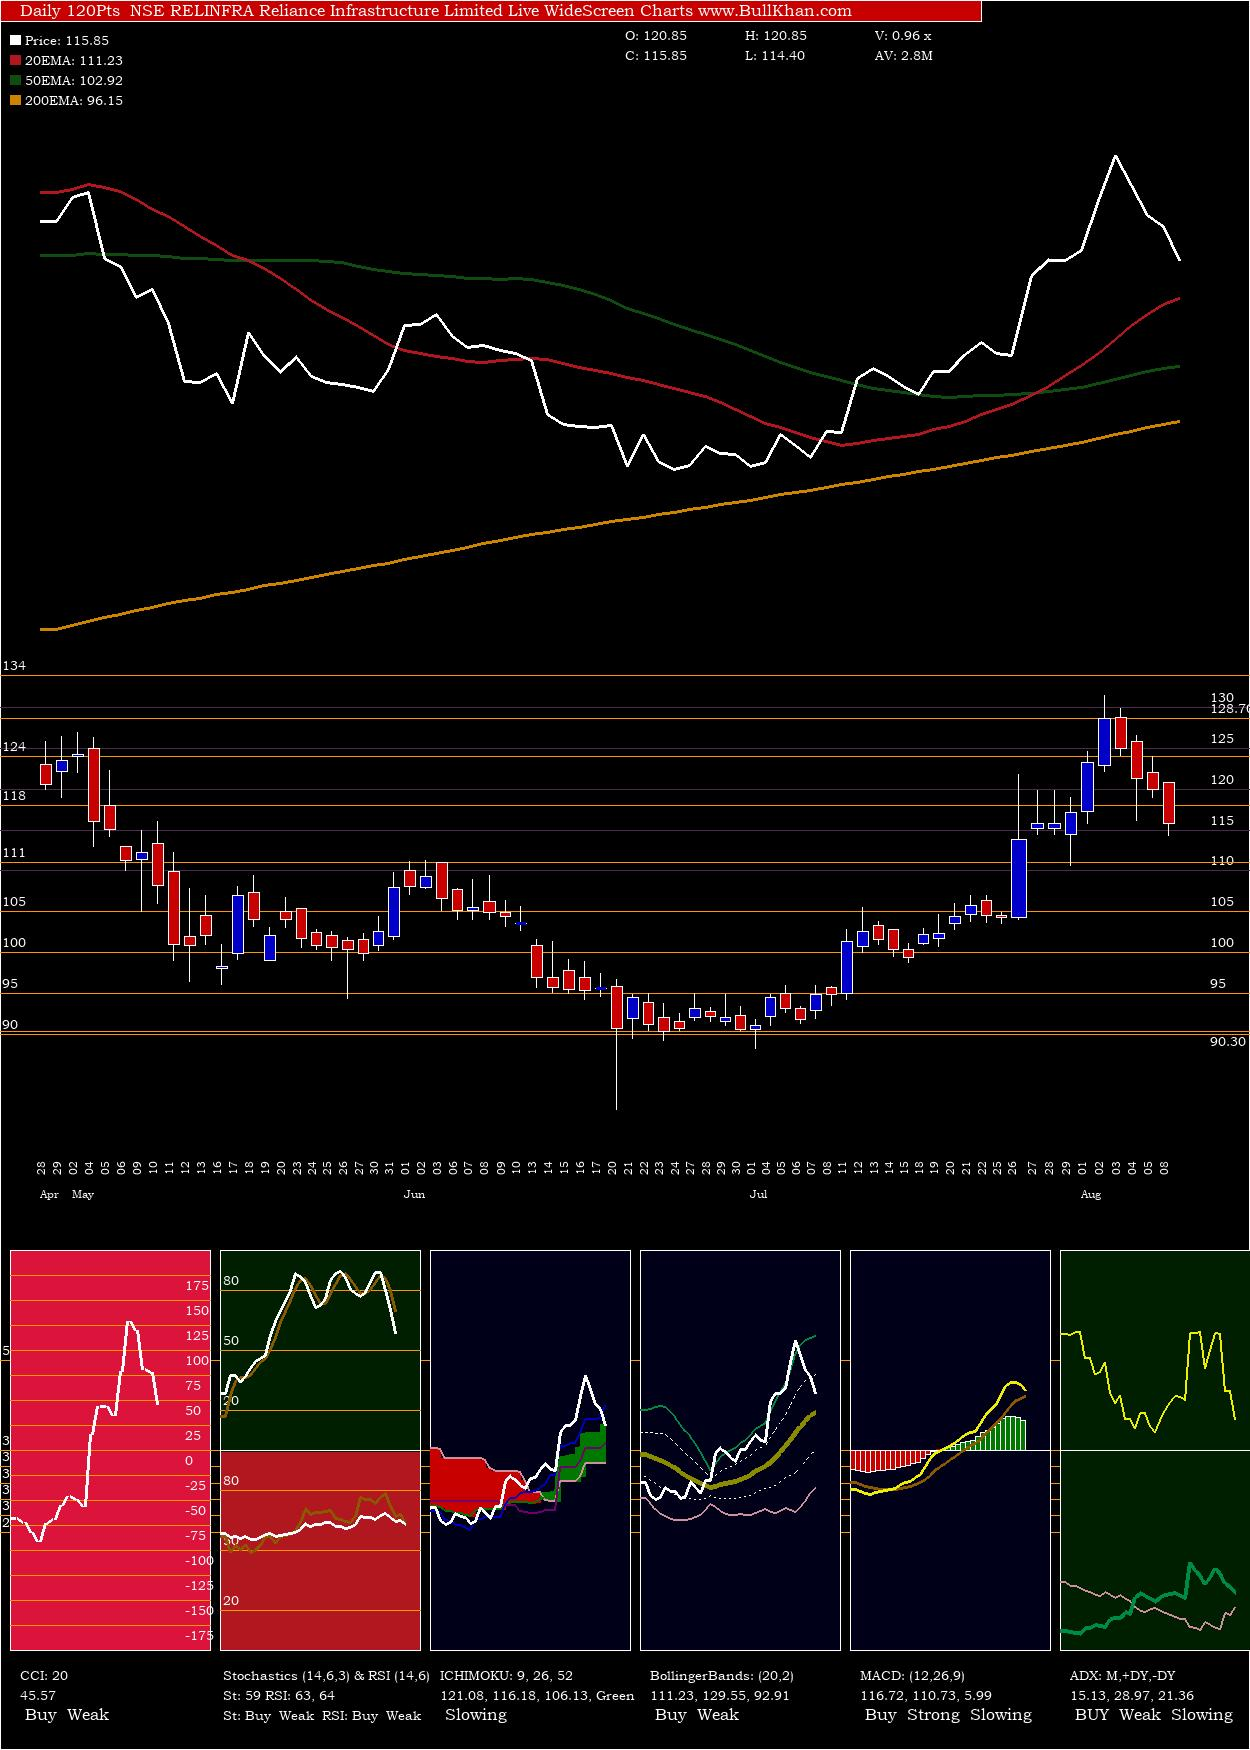 Reliance Infrastructure Limited charts and indicators